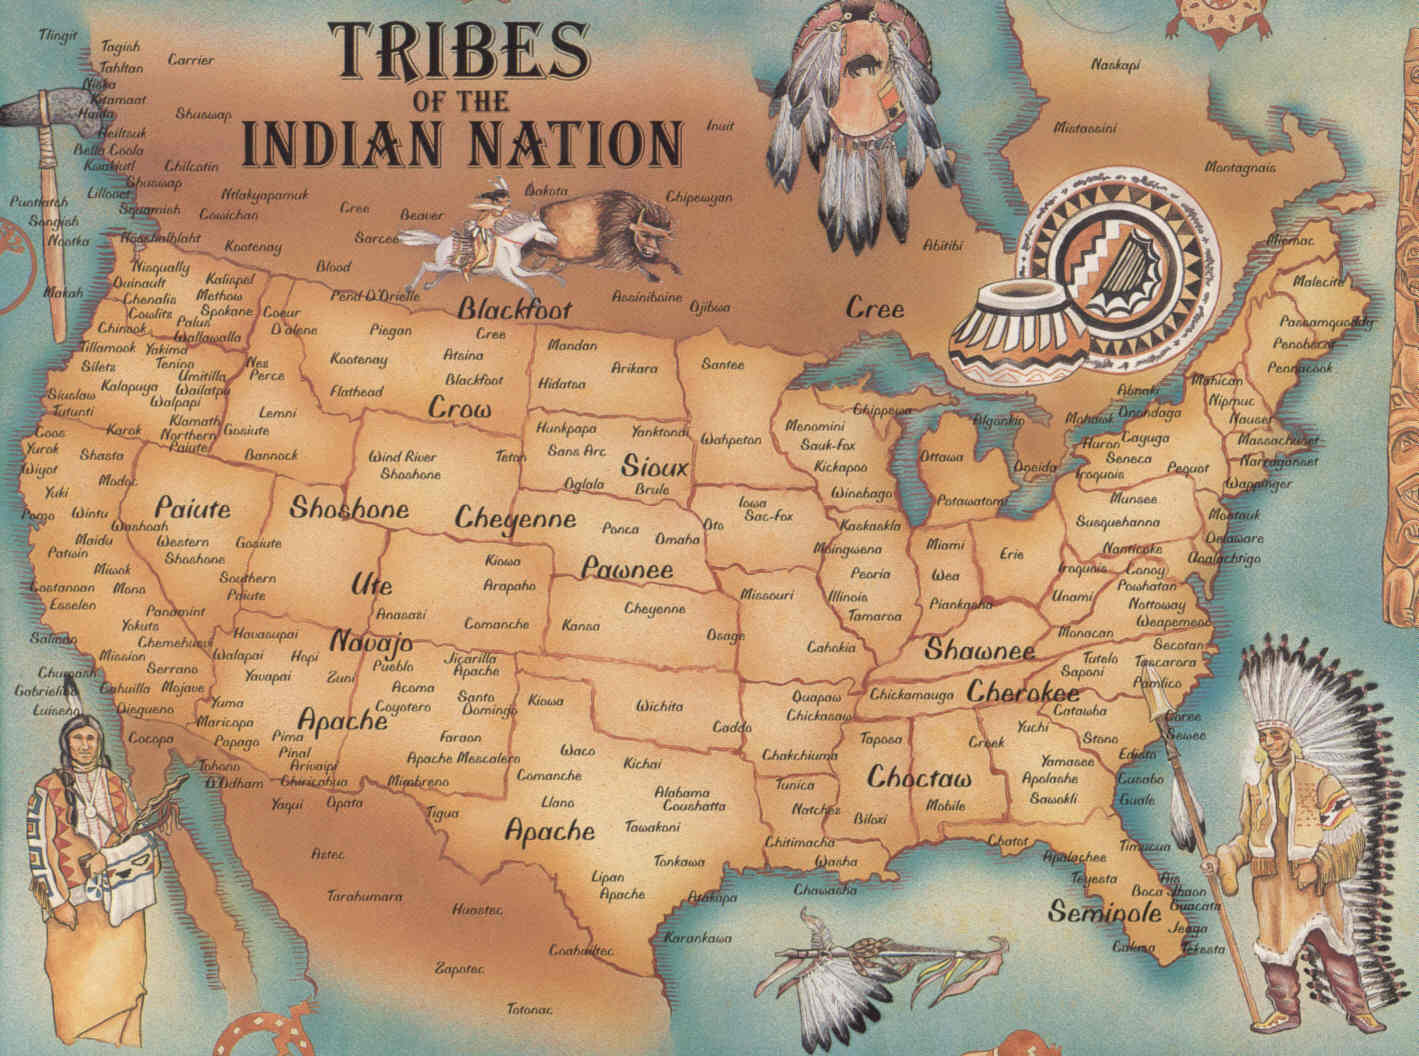 an overview of the tragedy of apache tribe and the fall of janos and geonimos faction An overview of the tragedy of apache tribe and the fall of janos and geonimo's faction.